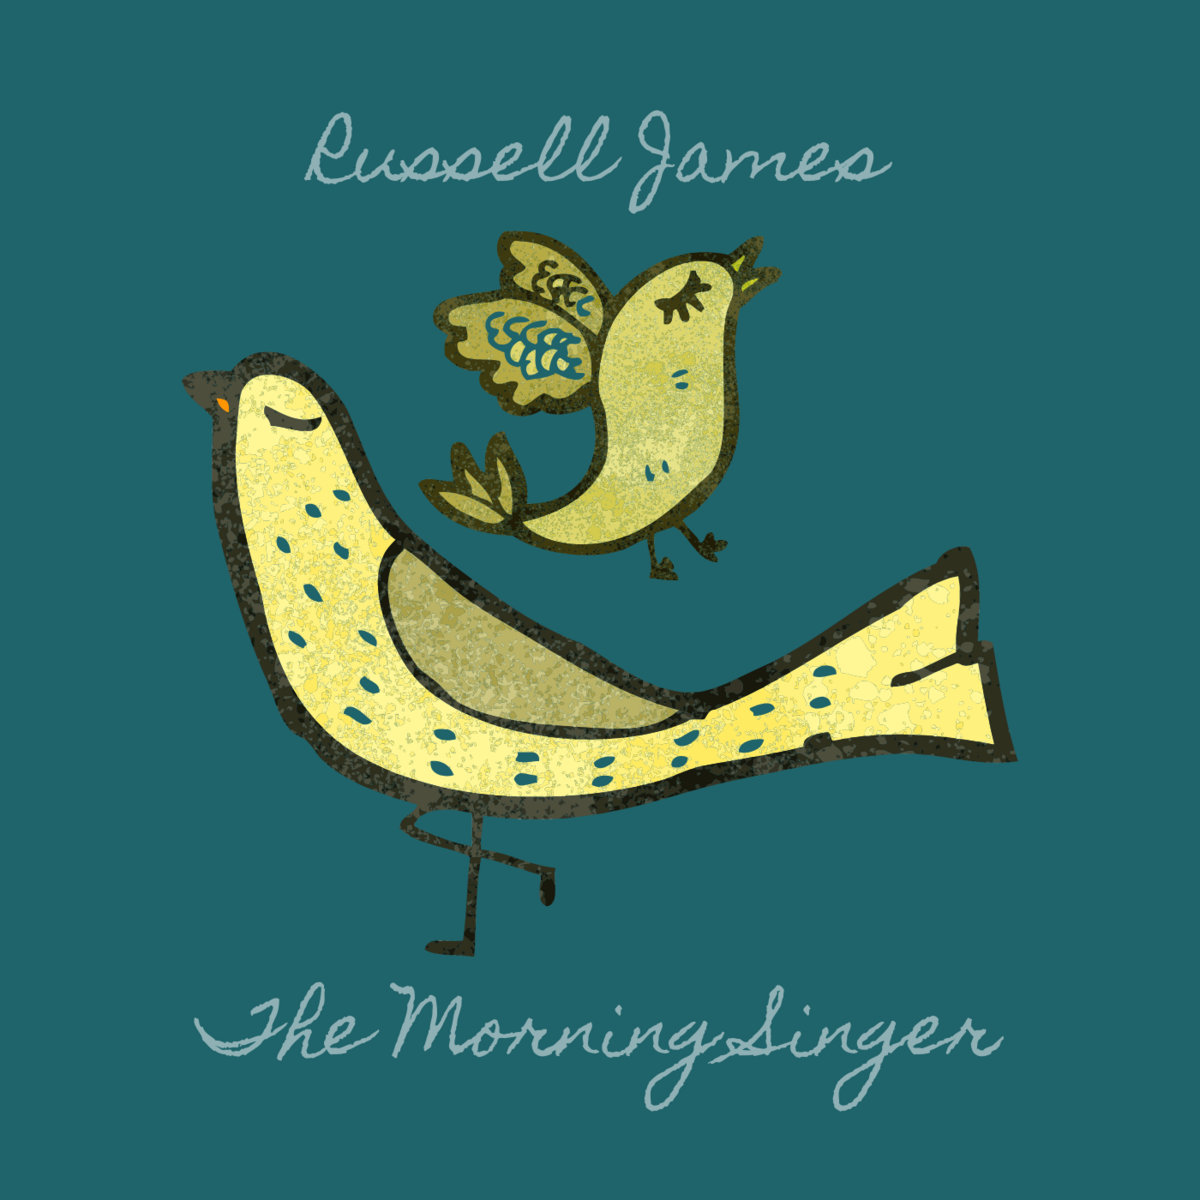 The Morning Singer album art